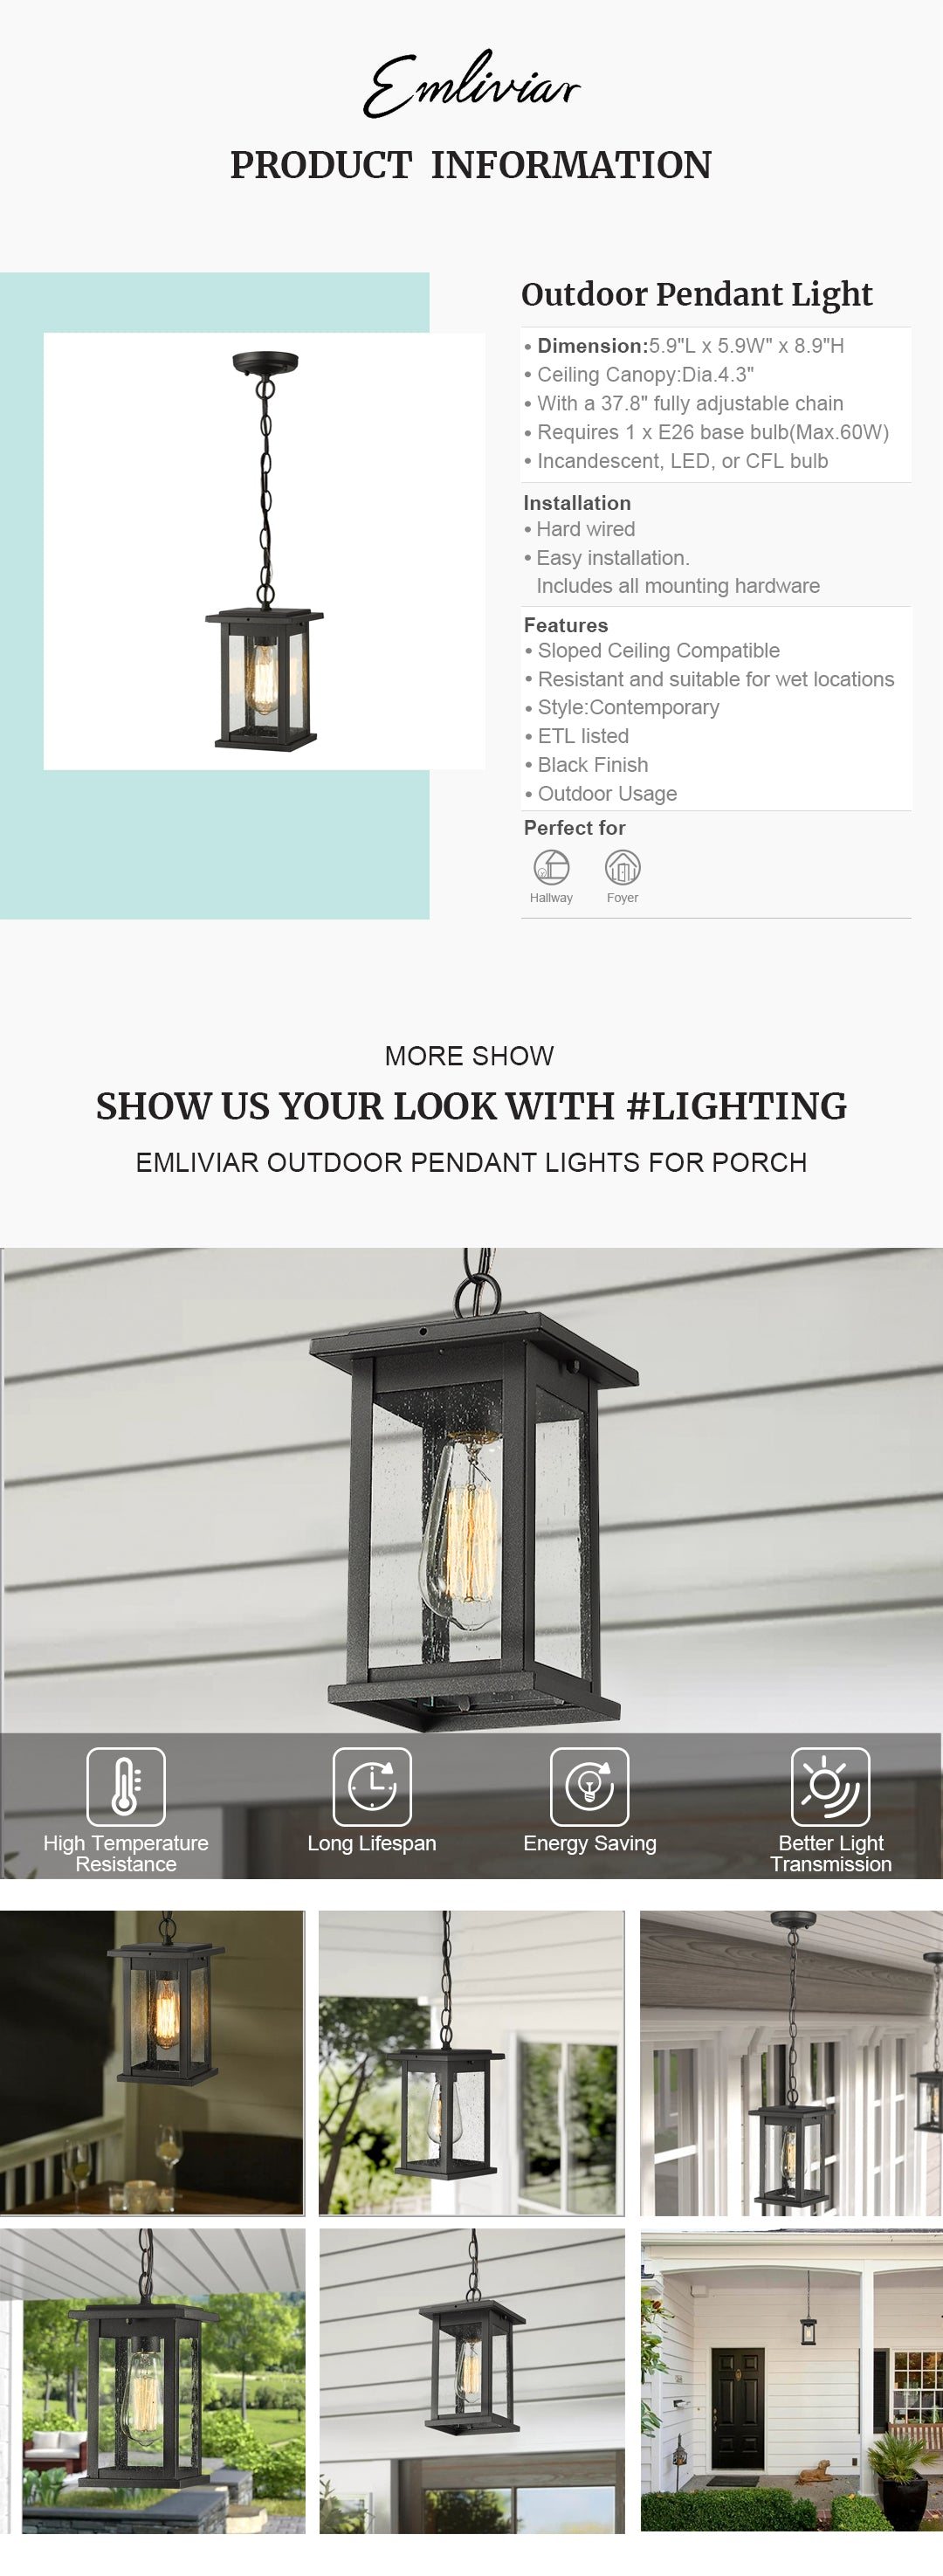 """Weather resistant and suitable for wet locations, this outdoor hanging lantern features sturdy metal construction and clear seeded glass in black finish Easy installation with open bottom to allow for easy bulb replacement. Includes all mounting hardware. cUL listed with a one-year warranty Hard wired. Requires 1 x E26 base bulb(Max.60W). Bulb NOT included. Available bulb type: incandescent, LED, or CFL bulb This exterior pendant light is sloped ceiling compatible, suit the needs of your space. Perfect for porch, patio, gazebo, foyer, garage, hallway and entryway Dimension: 5.9"""" x 5.9"""" x 8.9""""(L x W x H); Ceiling Canopy: Dia.4.3""""; With a 37.8"""" fully adjustable chain"""